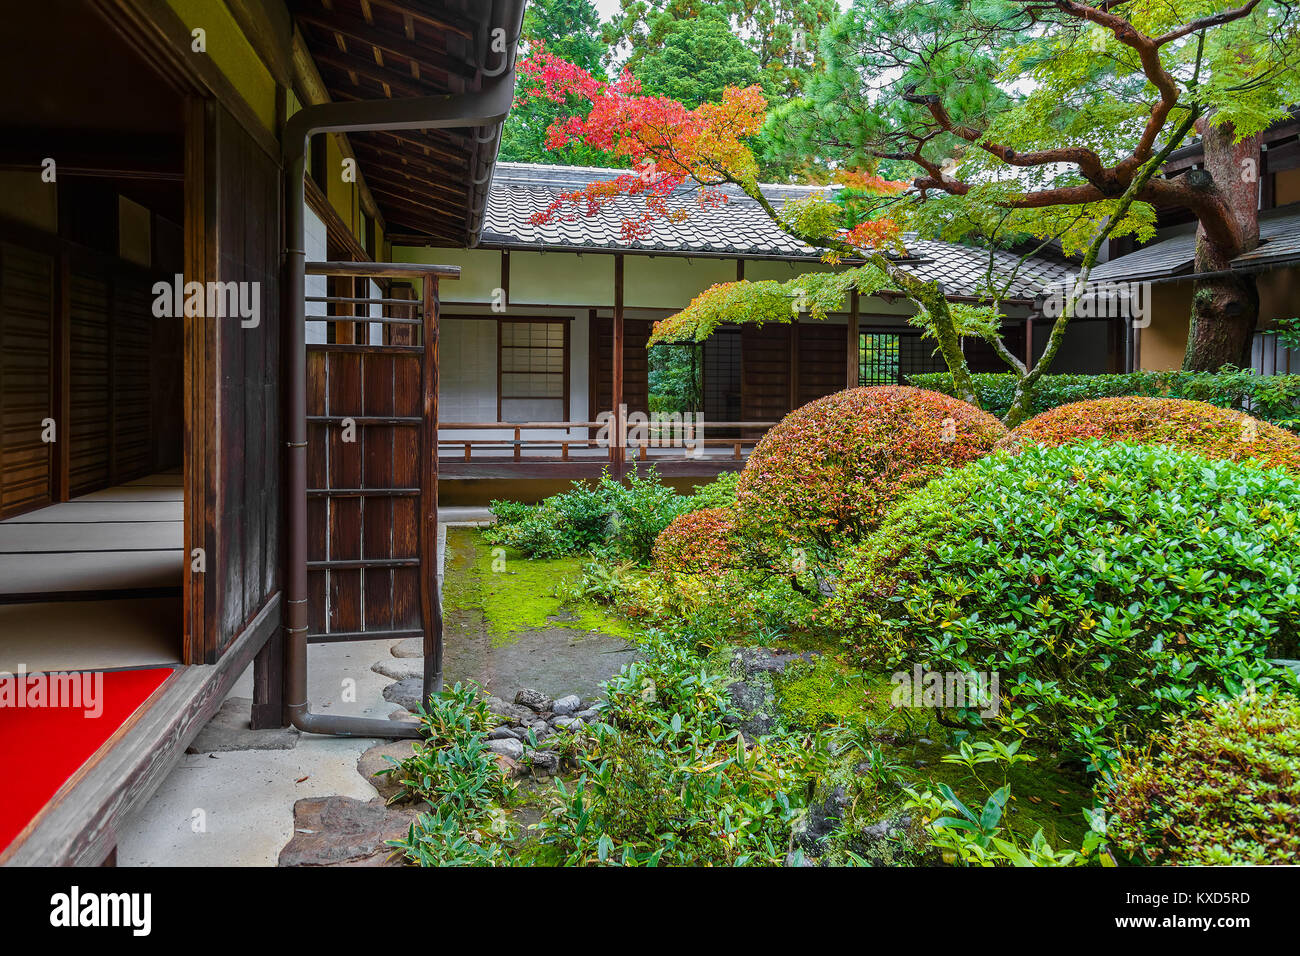 Koto-in Temple in Kyoto, Japan  KYOTO, JAPAN - OCTOBER 22: Koto-in Temple in Kyoto, Japan on October 22, 2014. One - Stock Image